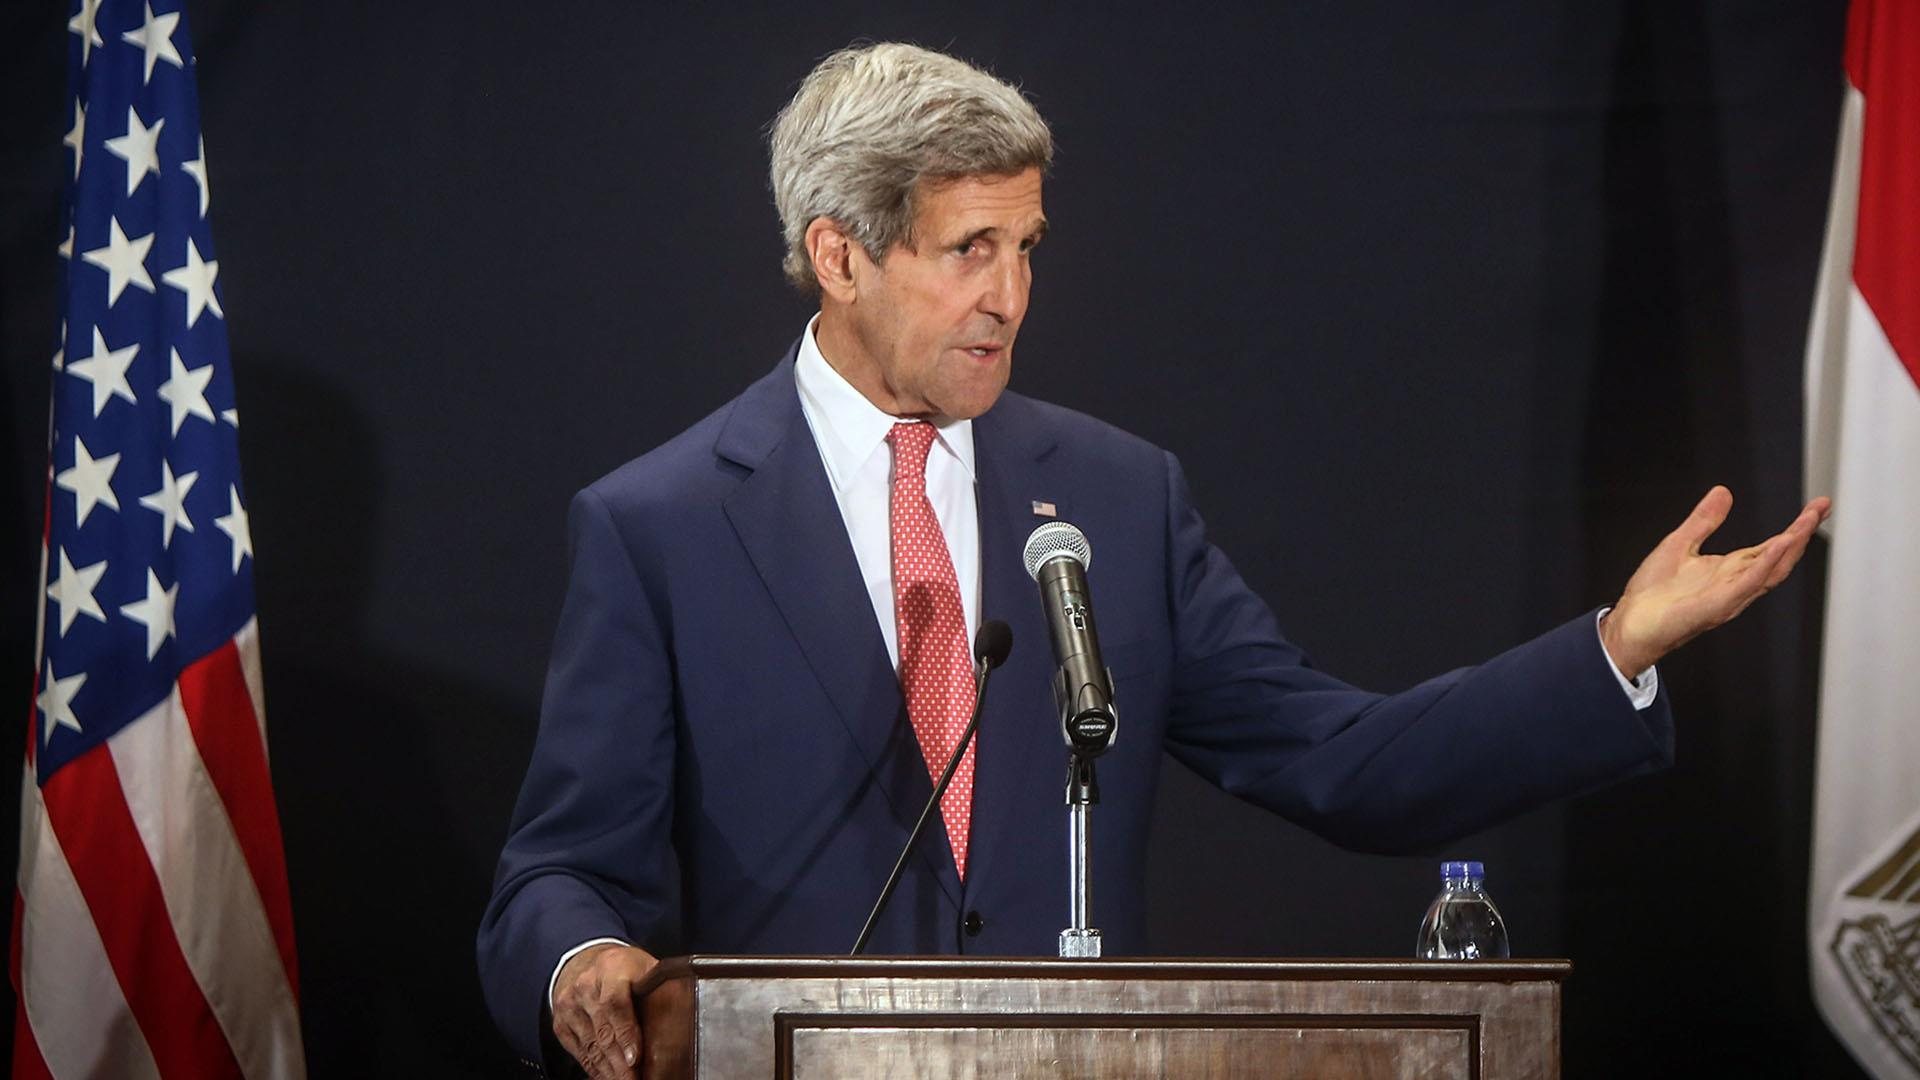 LIVE VIDEO: Kerry testifies on ISIS